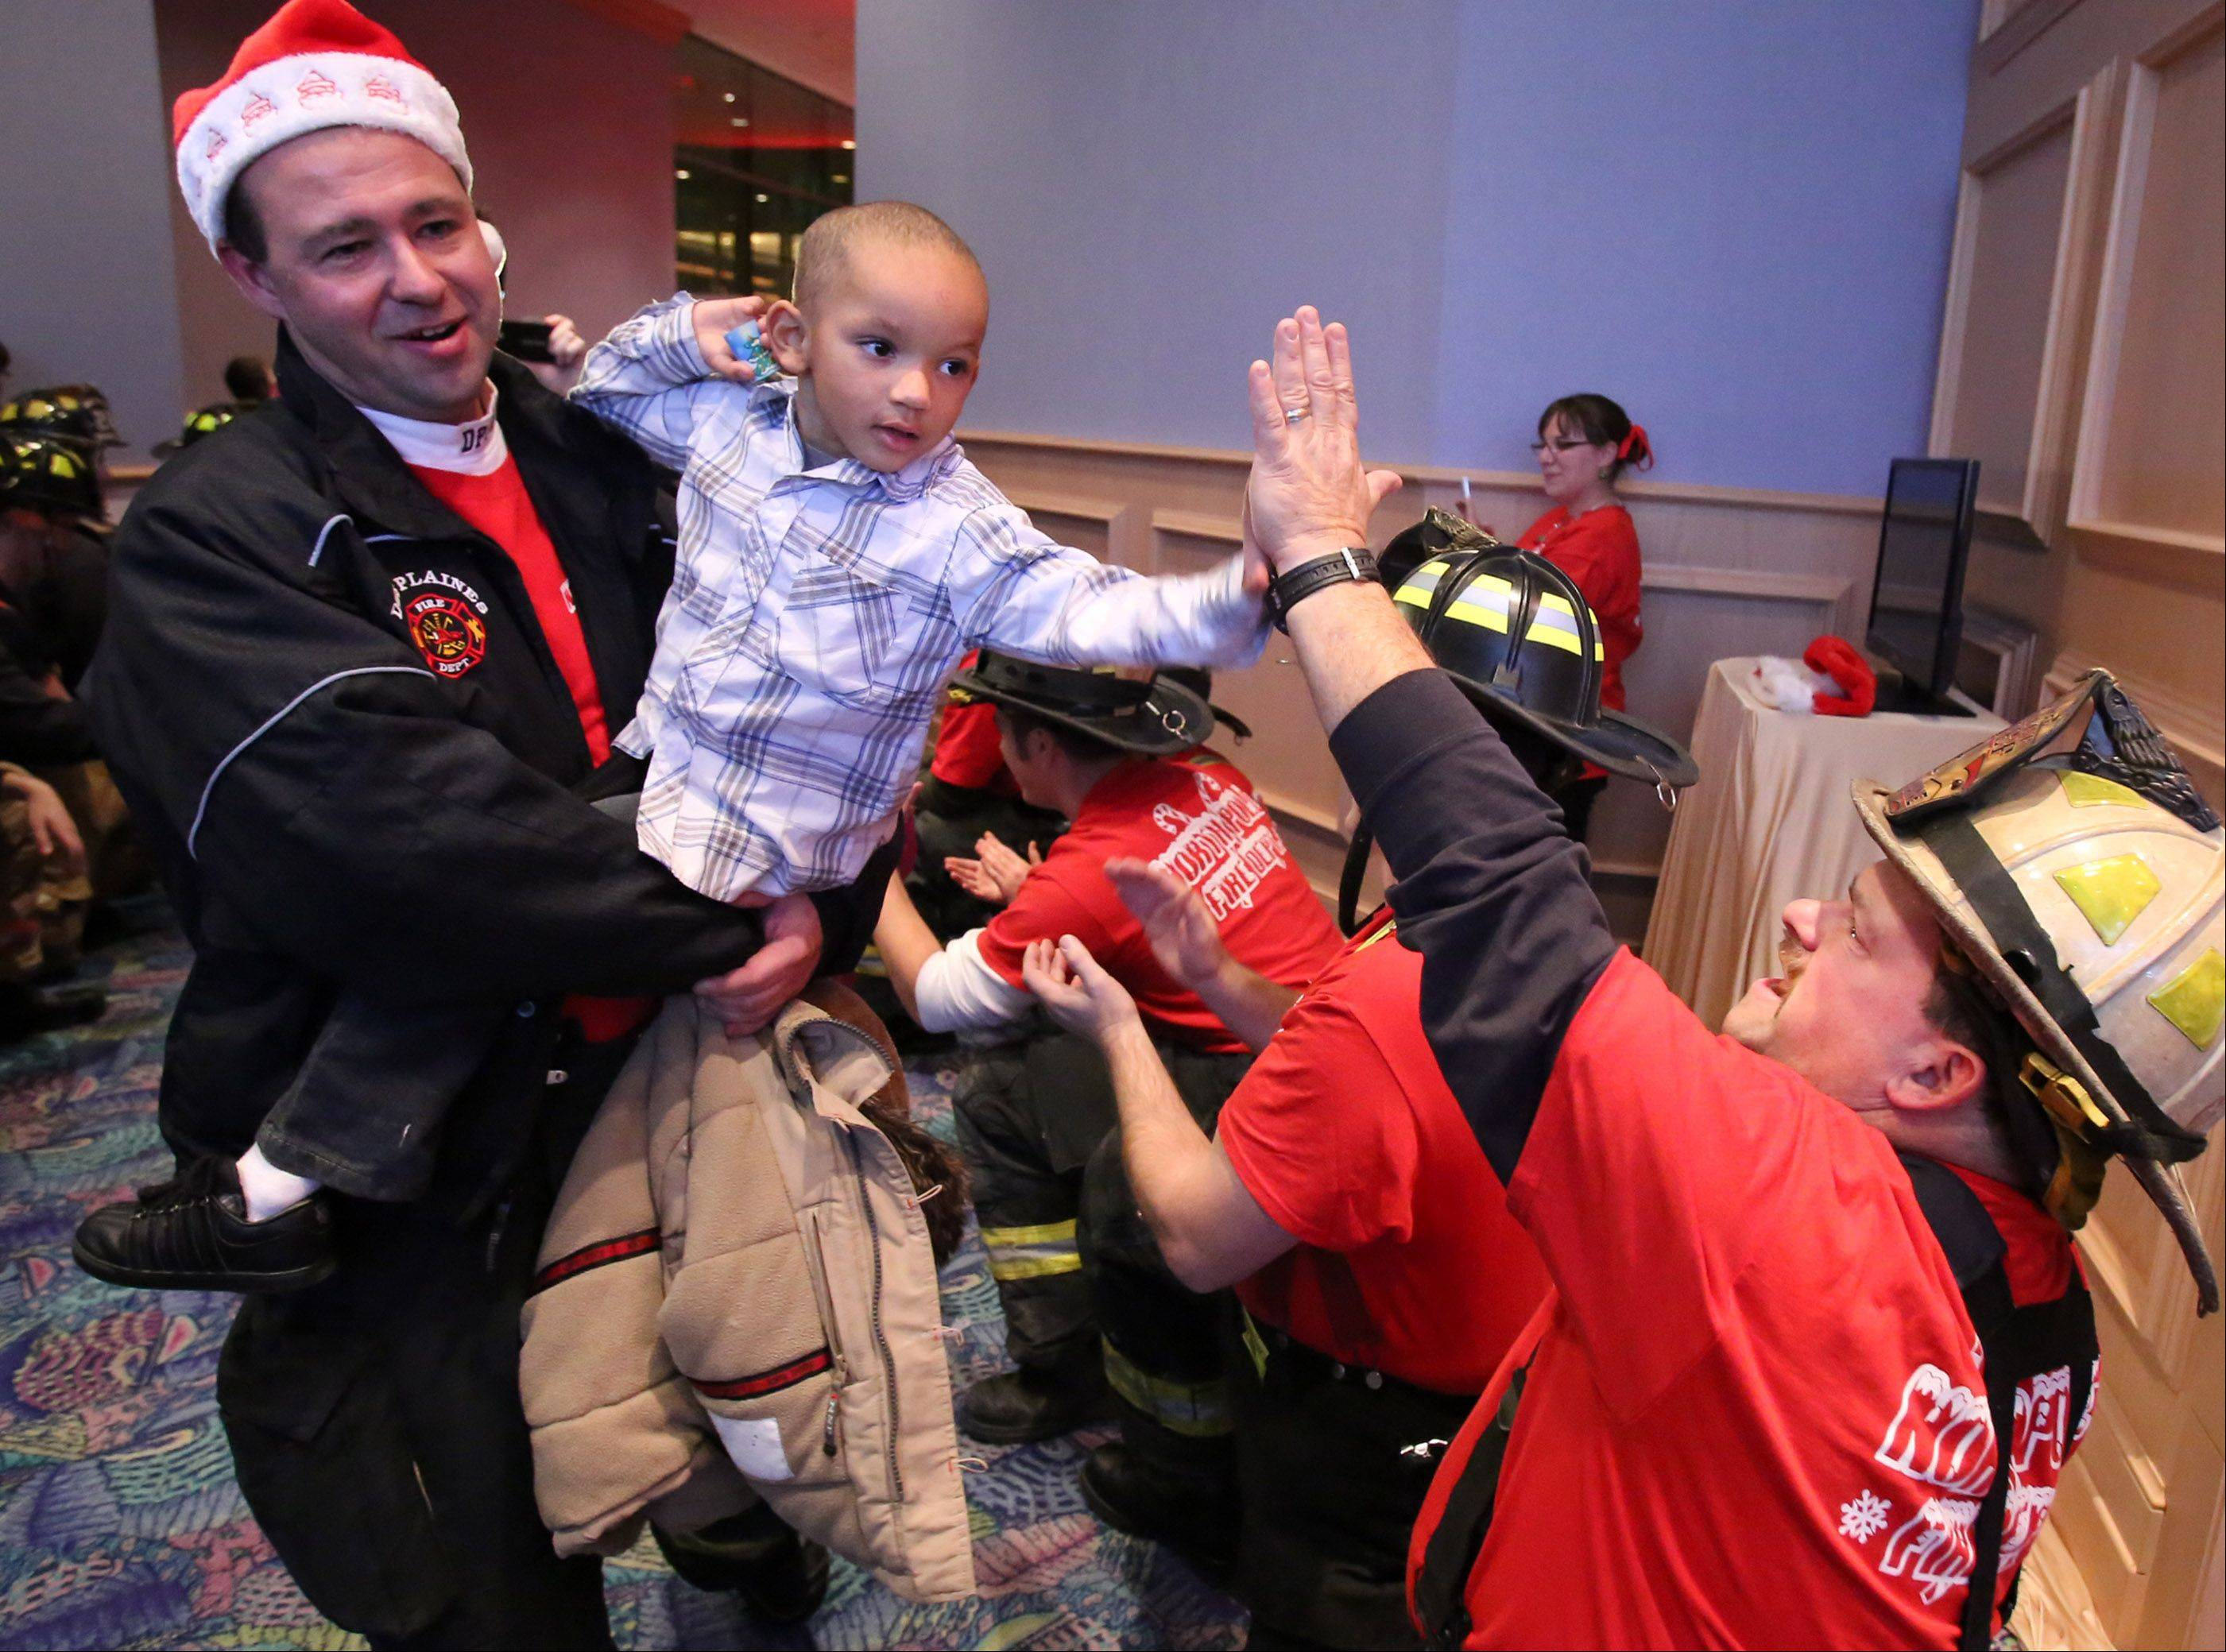 Mike Fox, district chief with the North Maine Fire Protection District, gives a high-five to Neko Rias, 4, of Chicago, being carried by Jim Utinans, of the Des Plaines Fire Department, through a Gauntlet of Honor made up of police officers and fire department personnel at the entrance to Santa's Winter Wonderland Saturday at the Donald E. Stephens Convention Center in Rosemont.